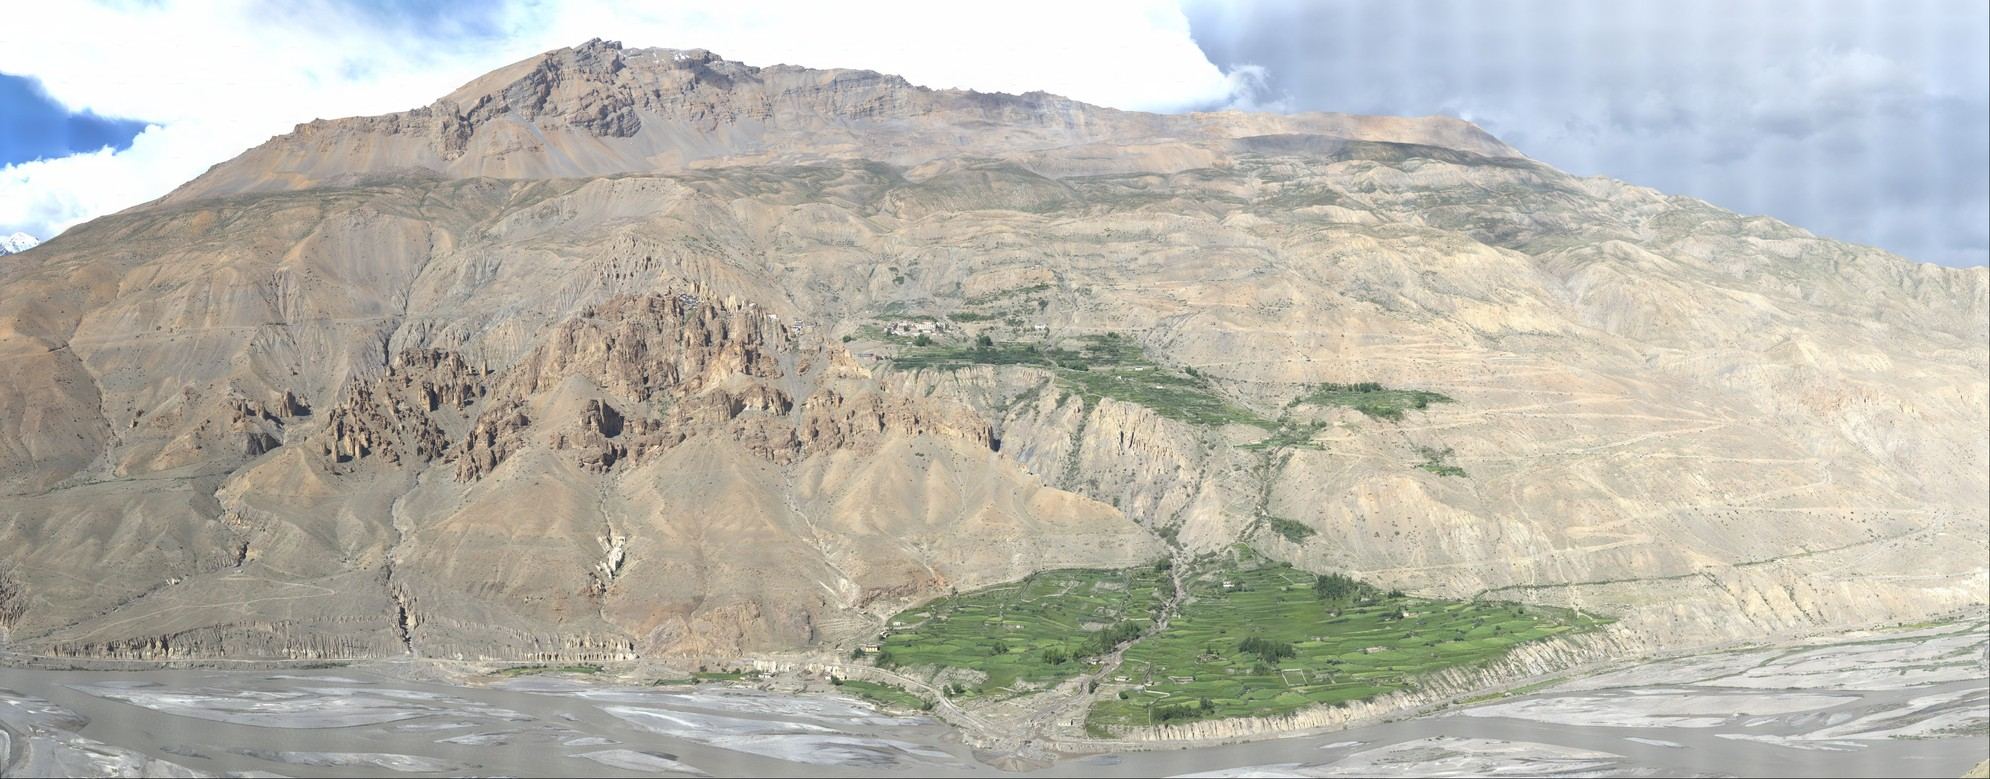 Dangkhar landslide (central part) seen uphill of Siluk